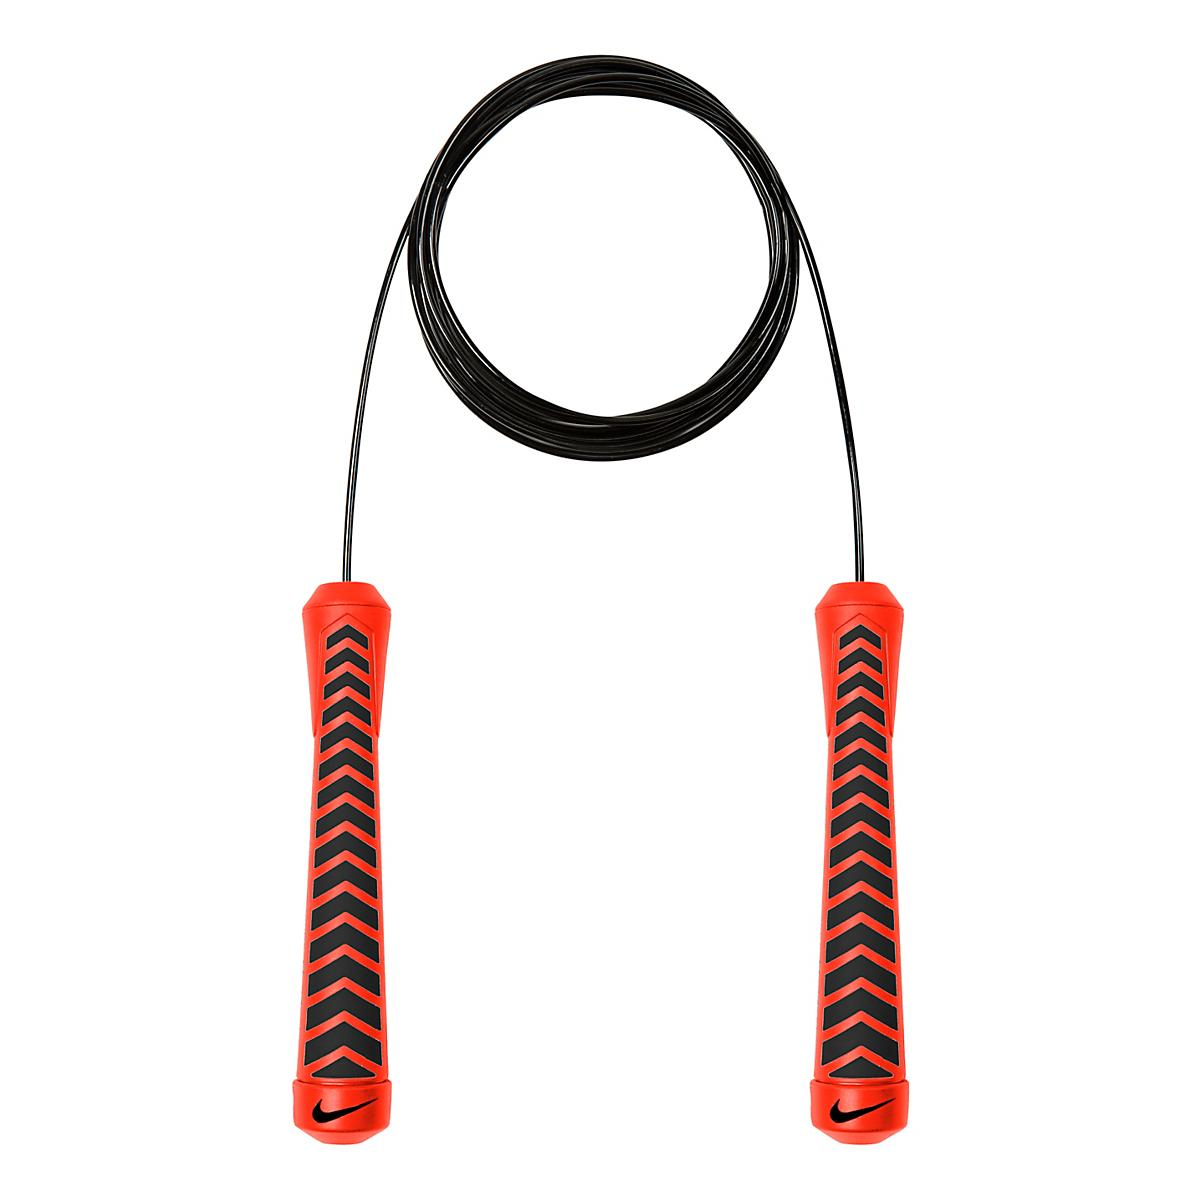 Cañón Operación posible pájaro  Nike Intensity Speed Rope Fitness Equipment at Road Runner Sports